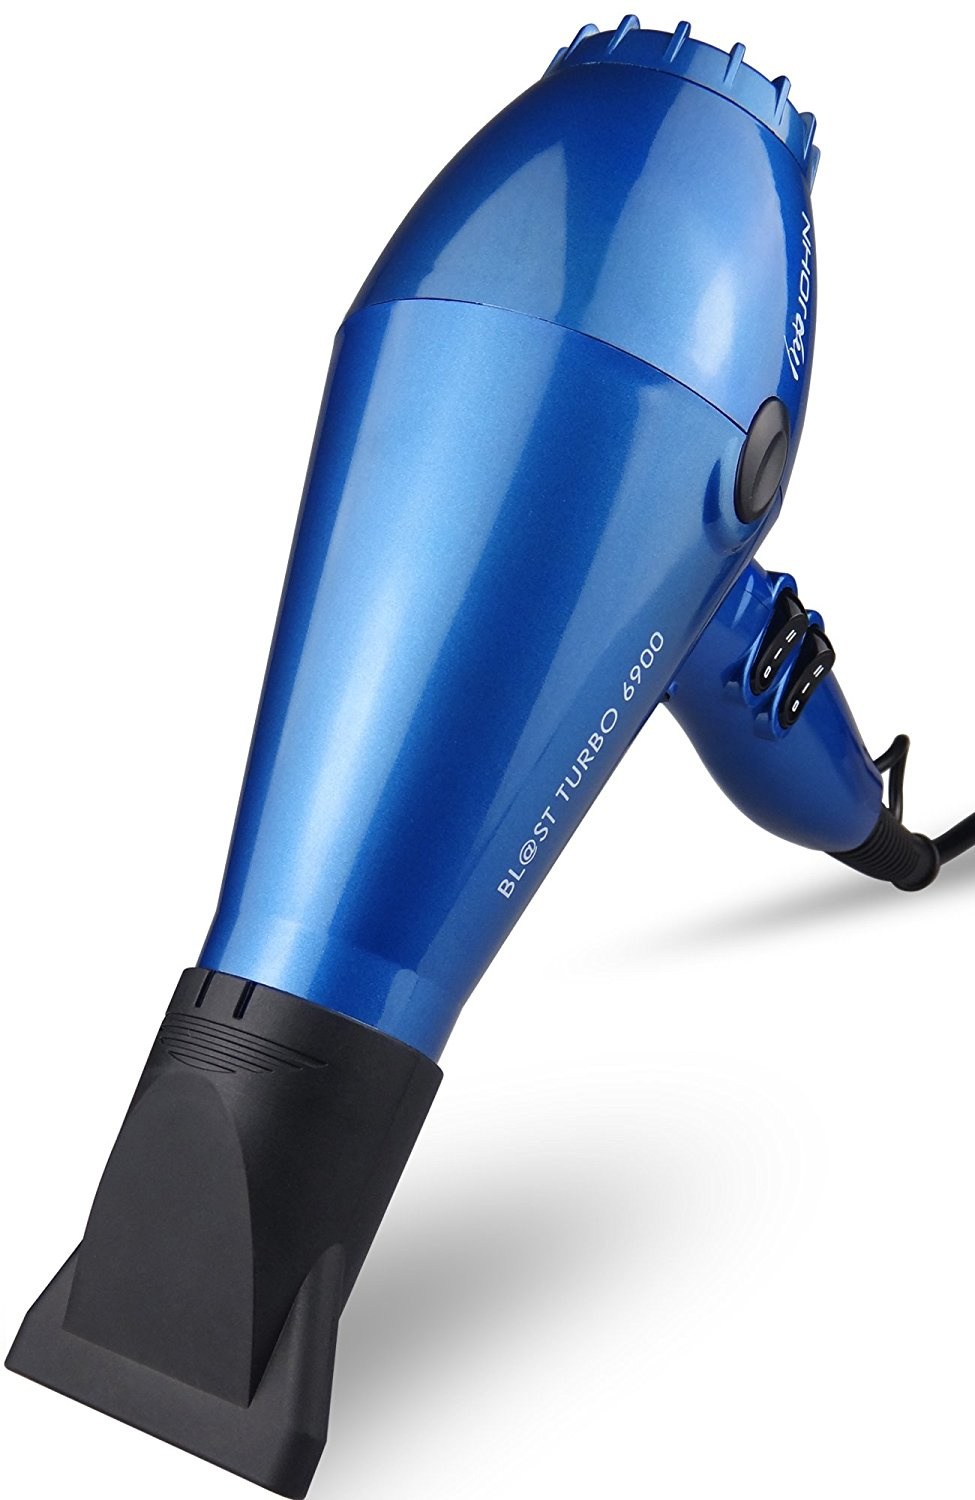 JOHN Blast 6900 Tourmaline Ceramic Ionic Professional Hair Dryer 2200W Powerful Fast Drying Blow Dryer 9Ft Cable AC Motor with 2 Nozzles for Salon Styling Glossy Blue